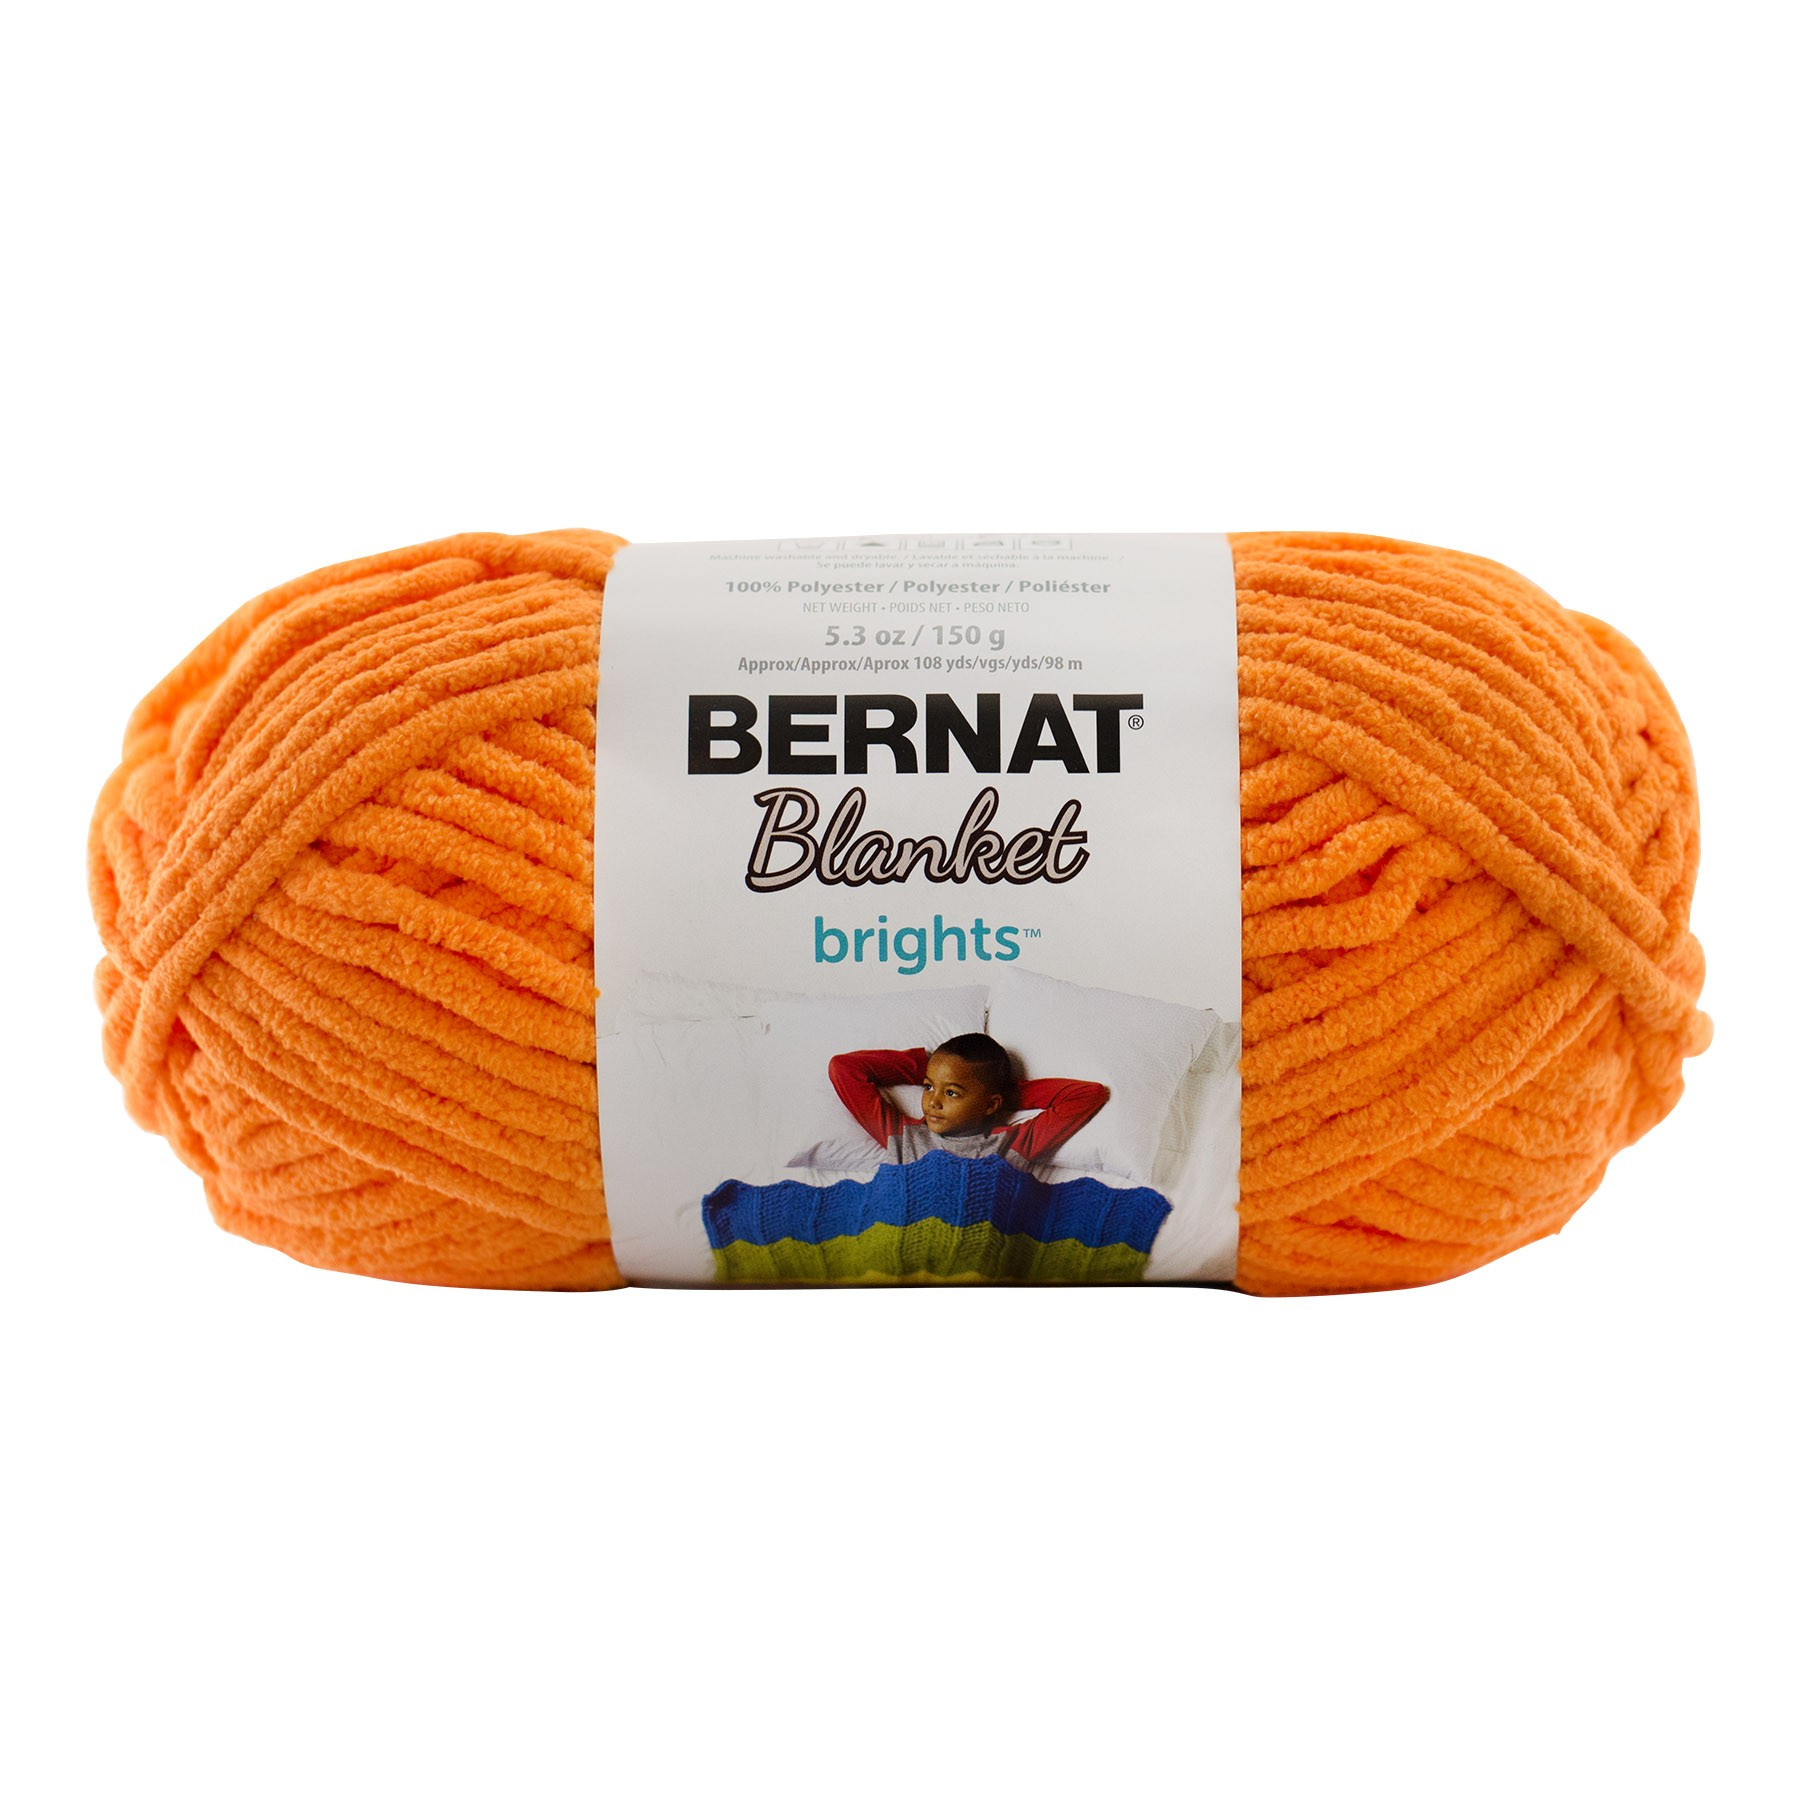 Awesome Bernat Blanket Brights Knitting Yarn 150g Yarn Companies Of Great 45 Images Yarn Companies